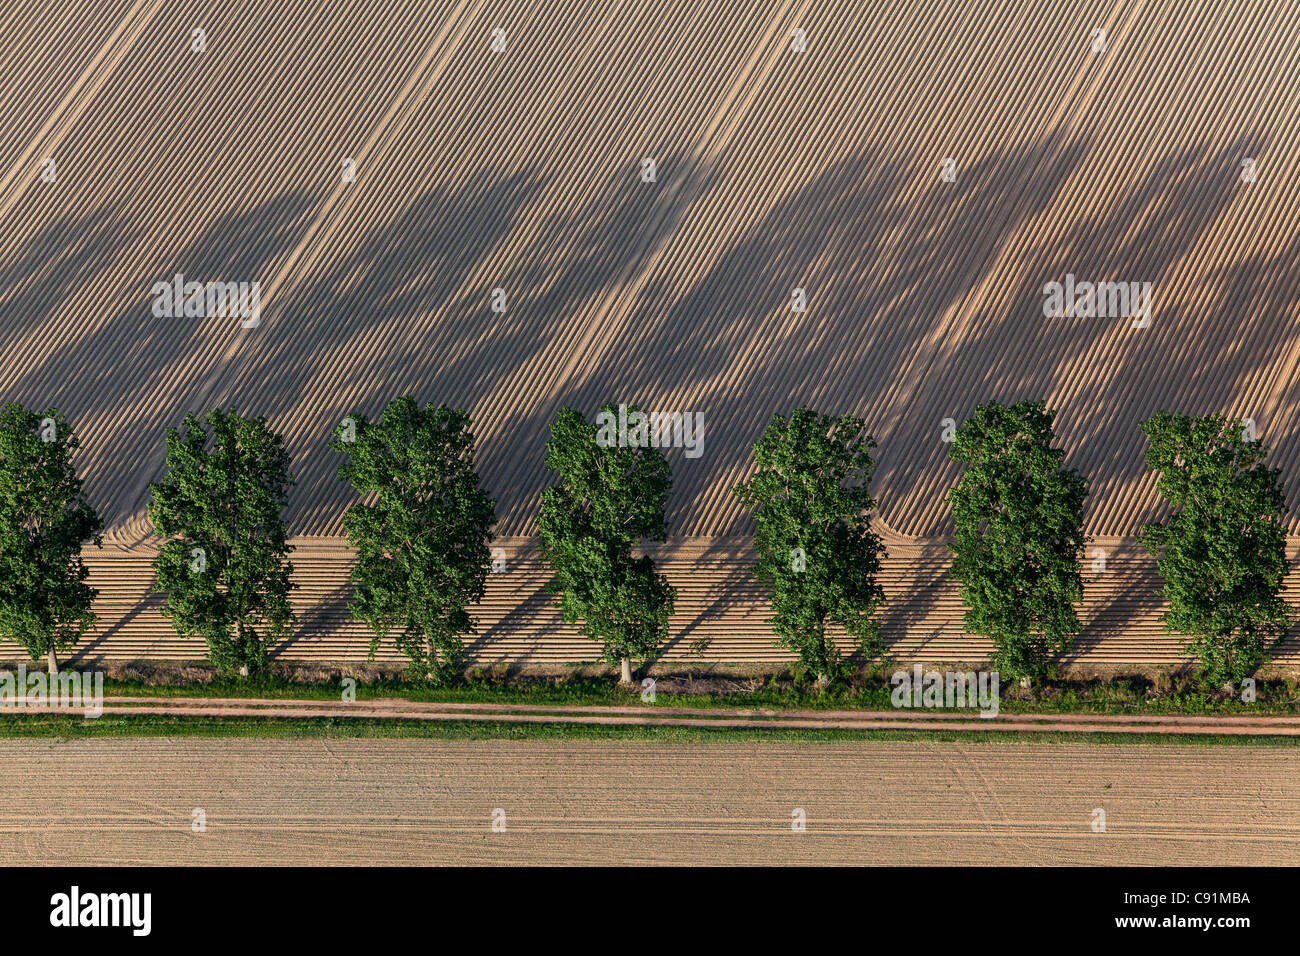 Aerial view of farm track parallel to trees, ploughmans furrows, patterns in the field, Lower Saxony, Germany - Stock Image